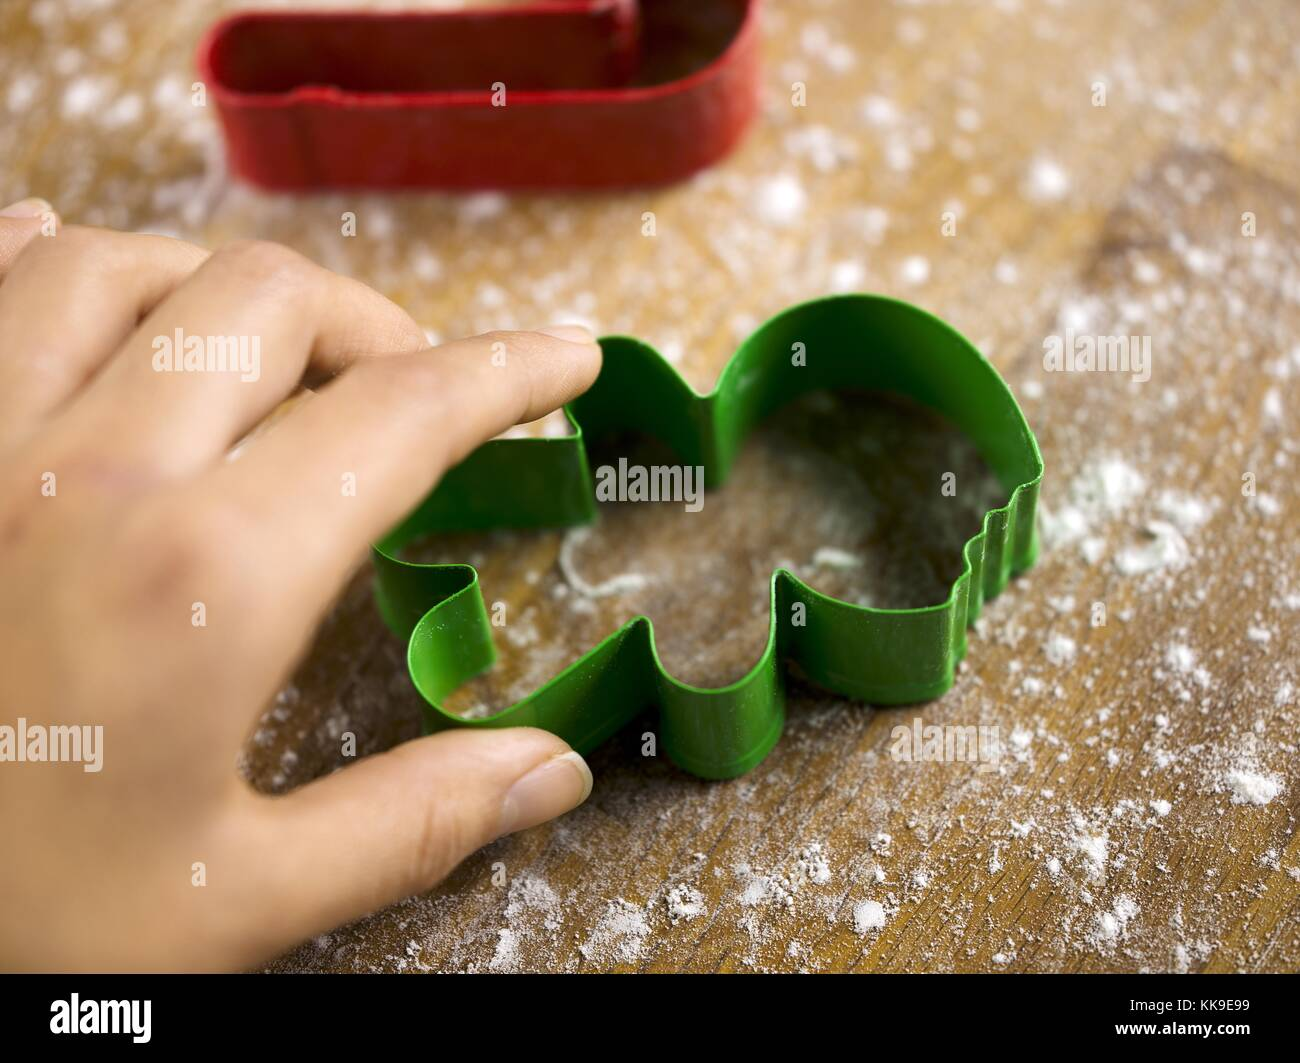 close up shot of a person touching plastic cookie cutter - Stock Image